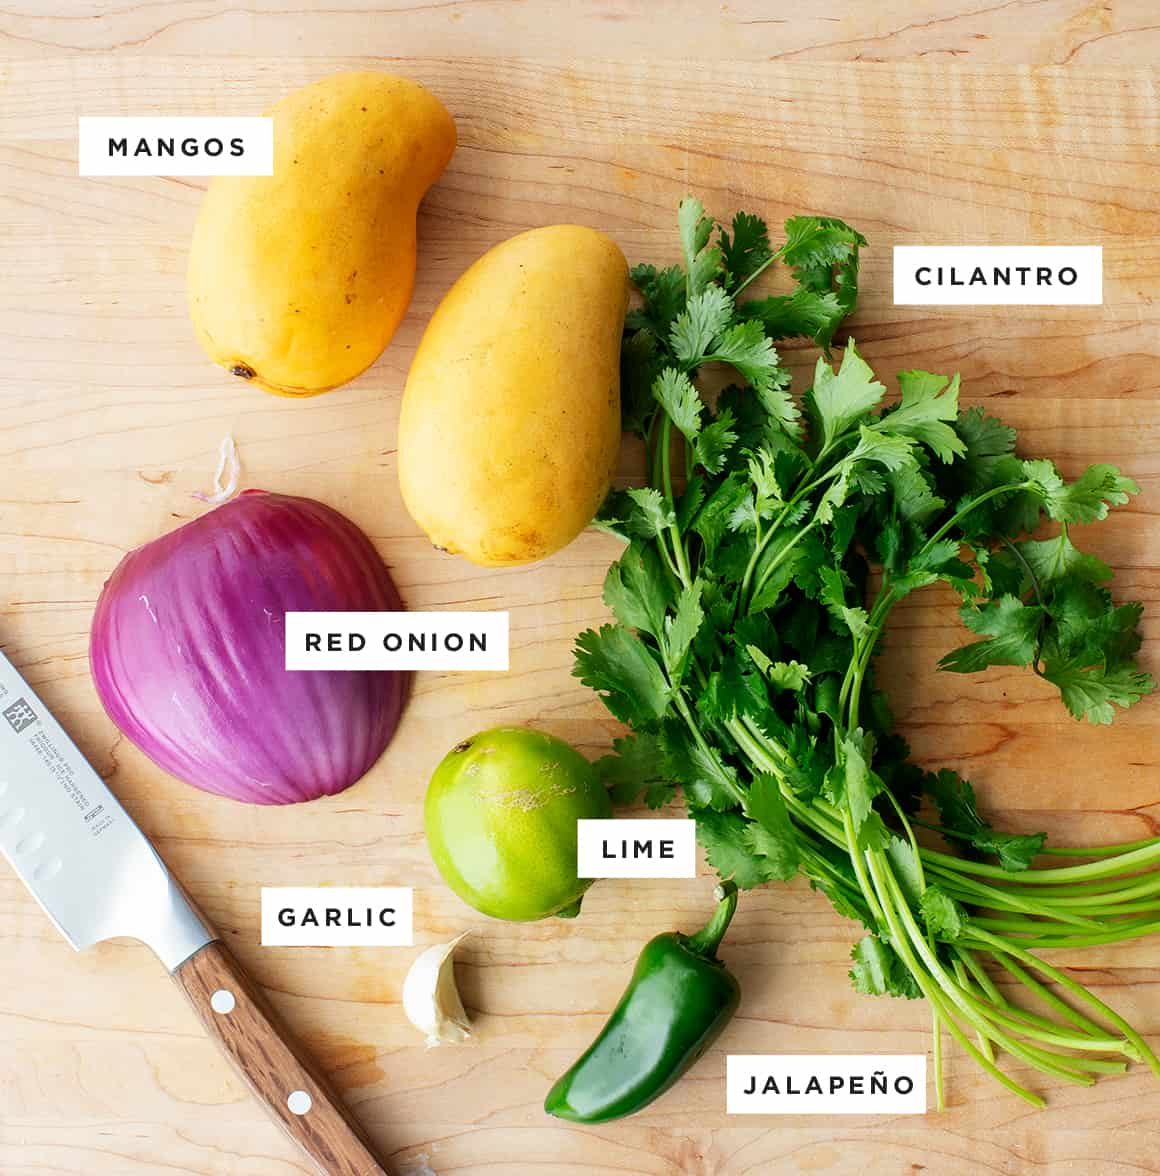 Mango salsa recipe ingredients